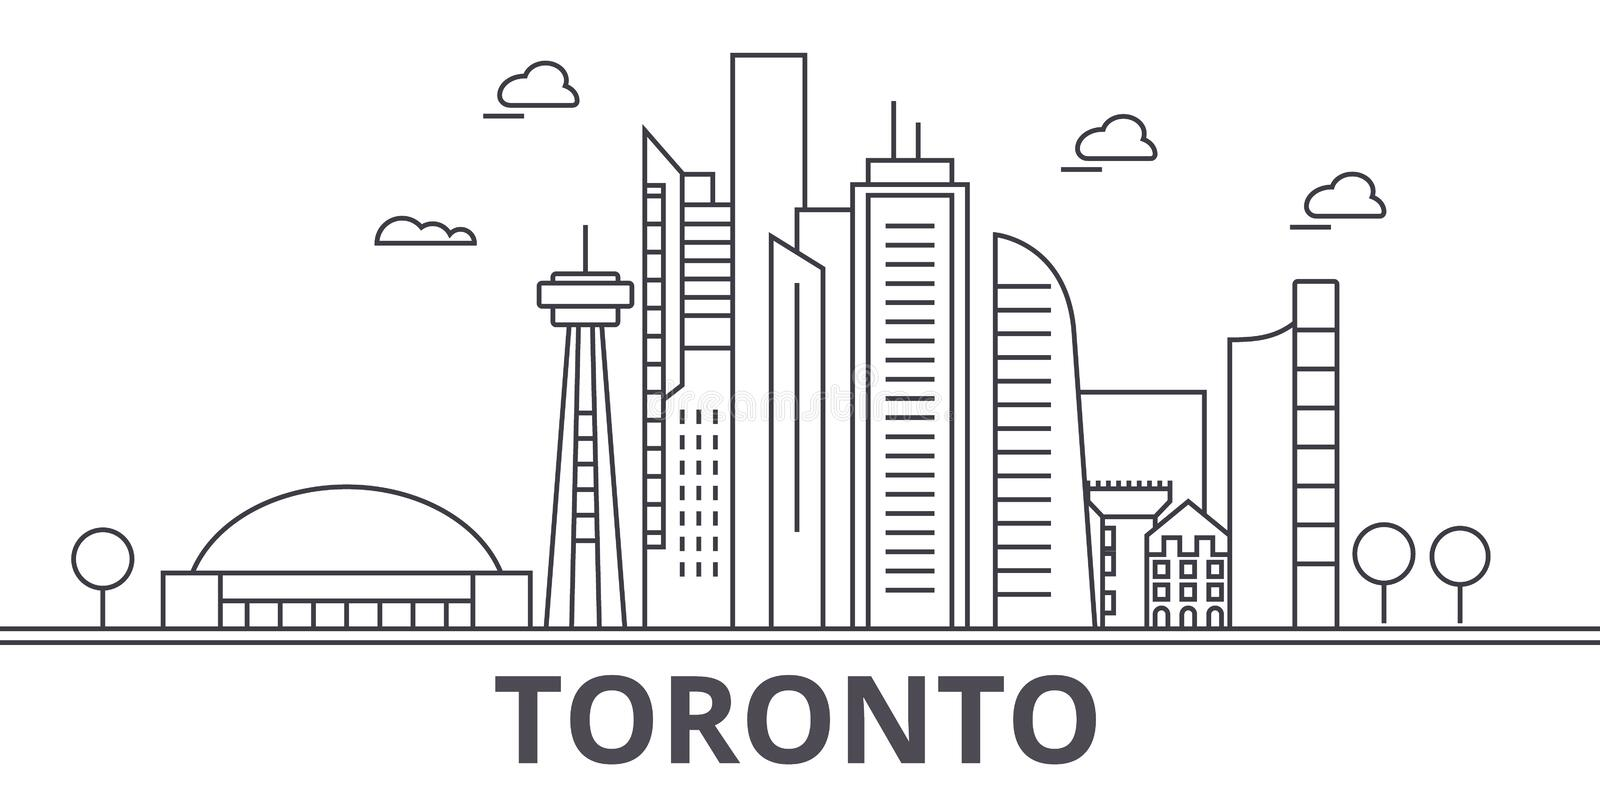 Toronto architecture line skyline illustration. Linear vector cityscape with famous landmarks, city sights, design icons. Editable strokes royalty free illustration